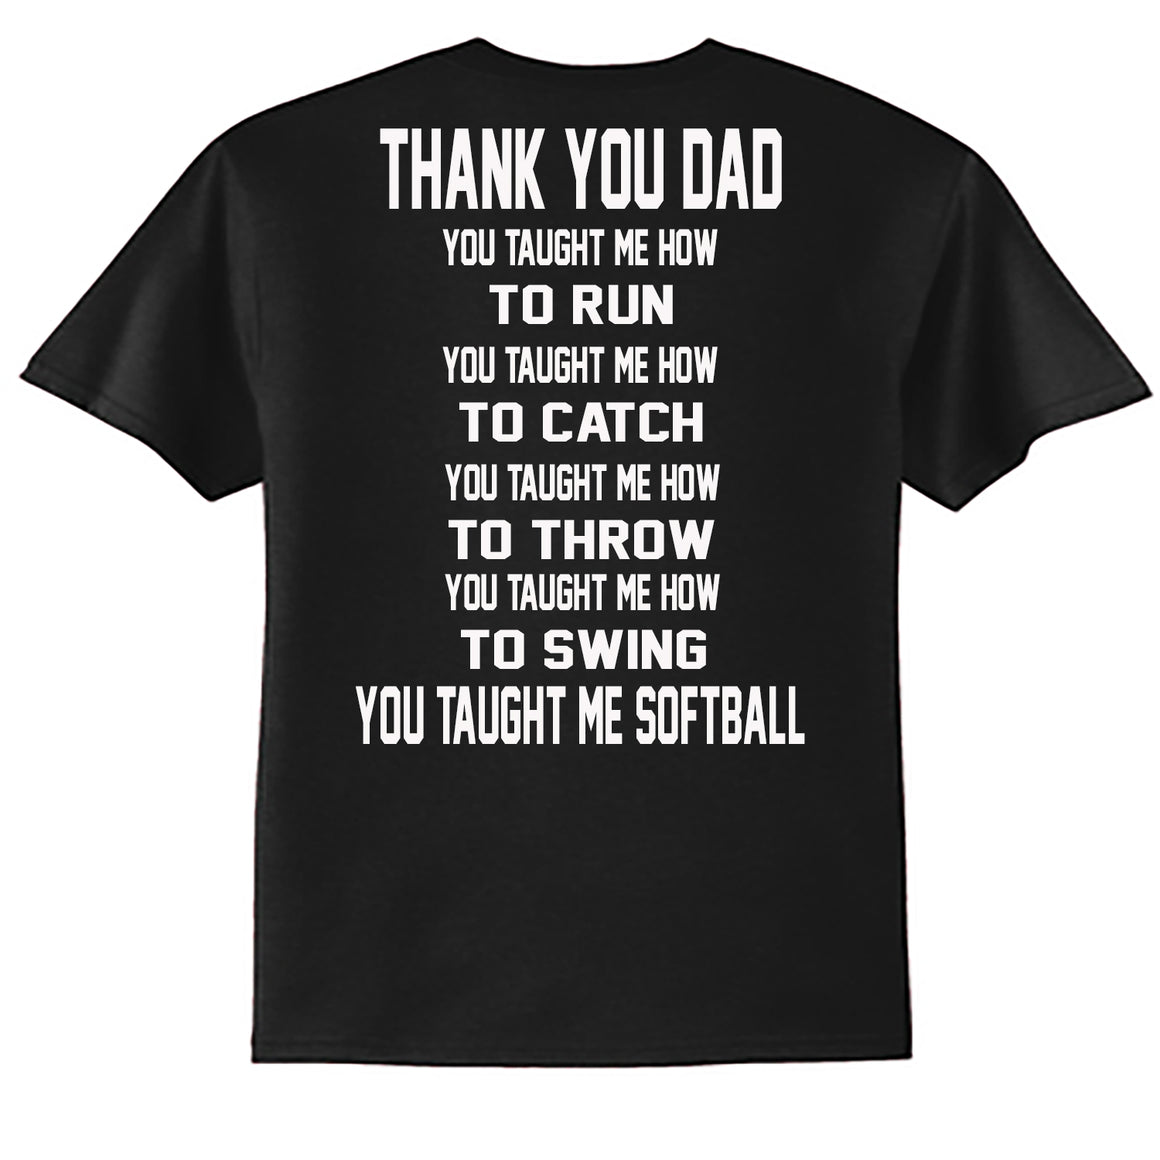 Dad Taught Me Softball